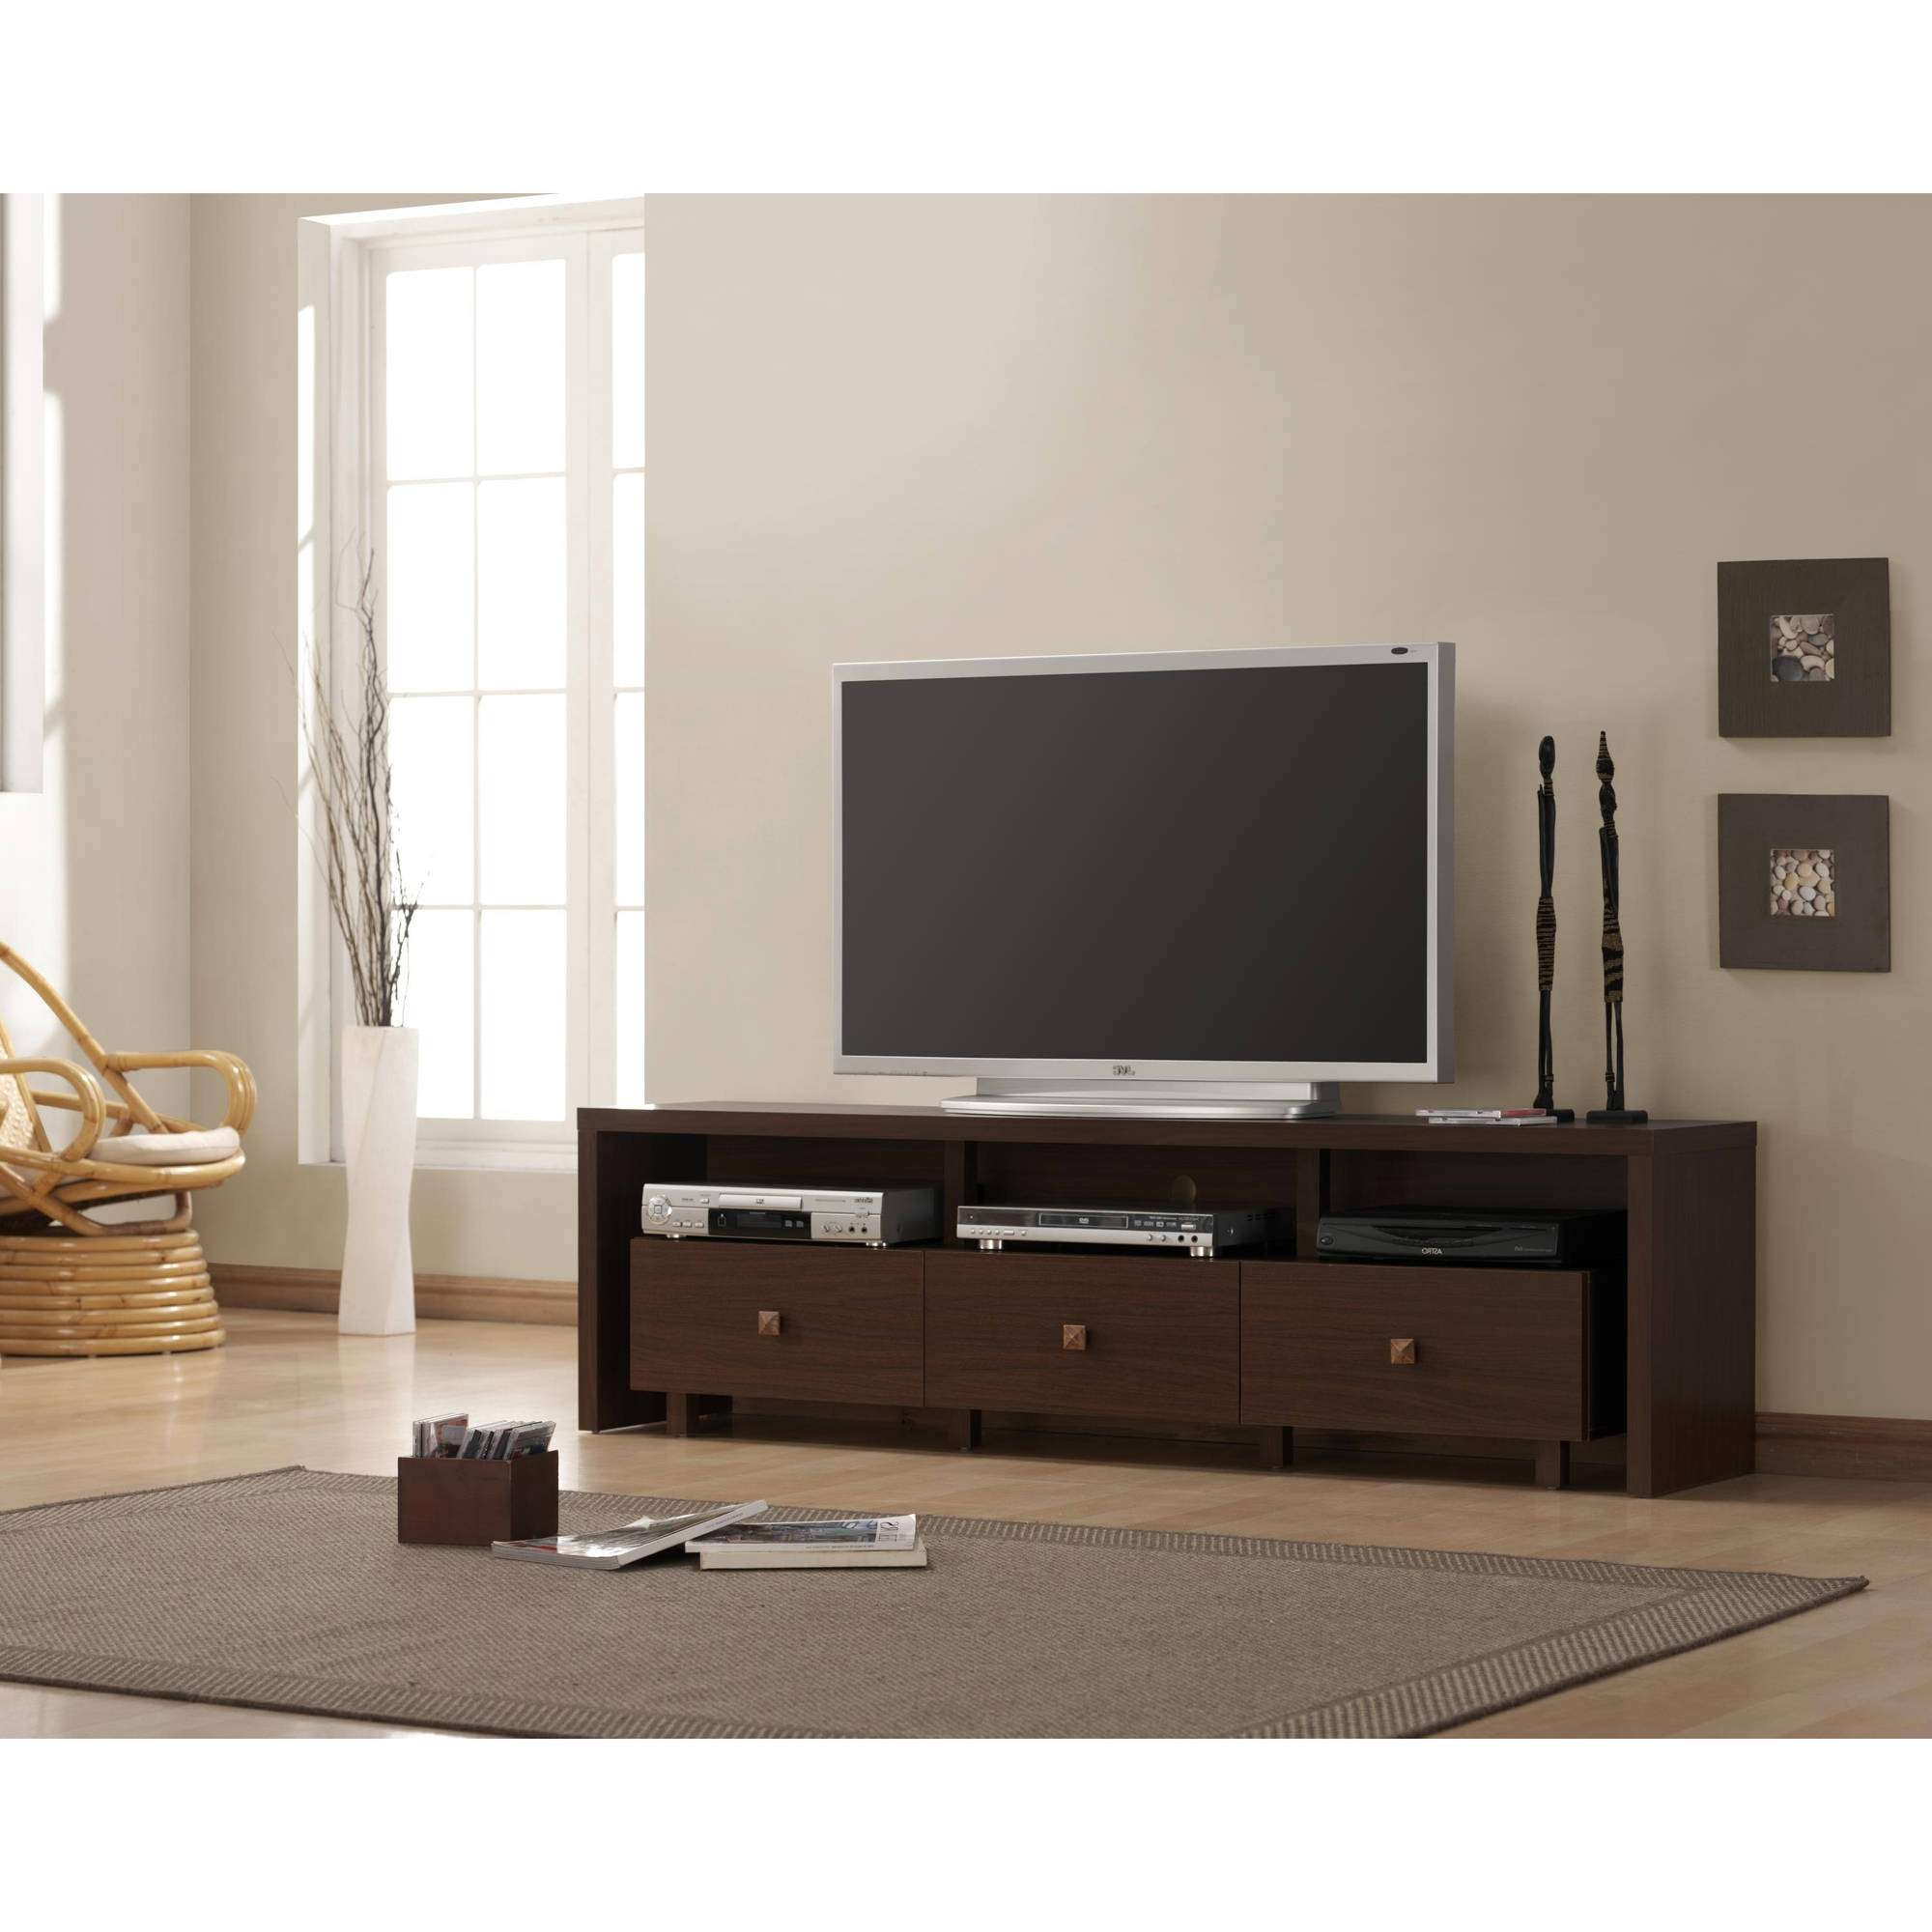 Tv : Wonderful Expresso Tv Stands Baxton Studio Matlock Modern In Expresso Tv Stands (View 14 of 15)